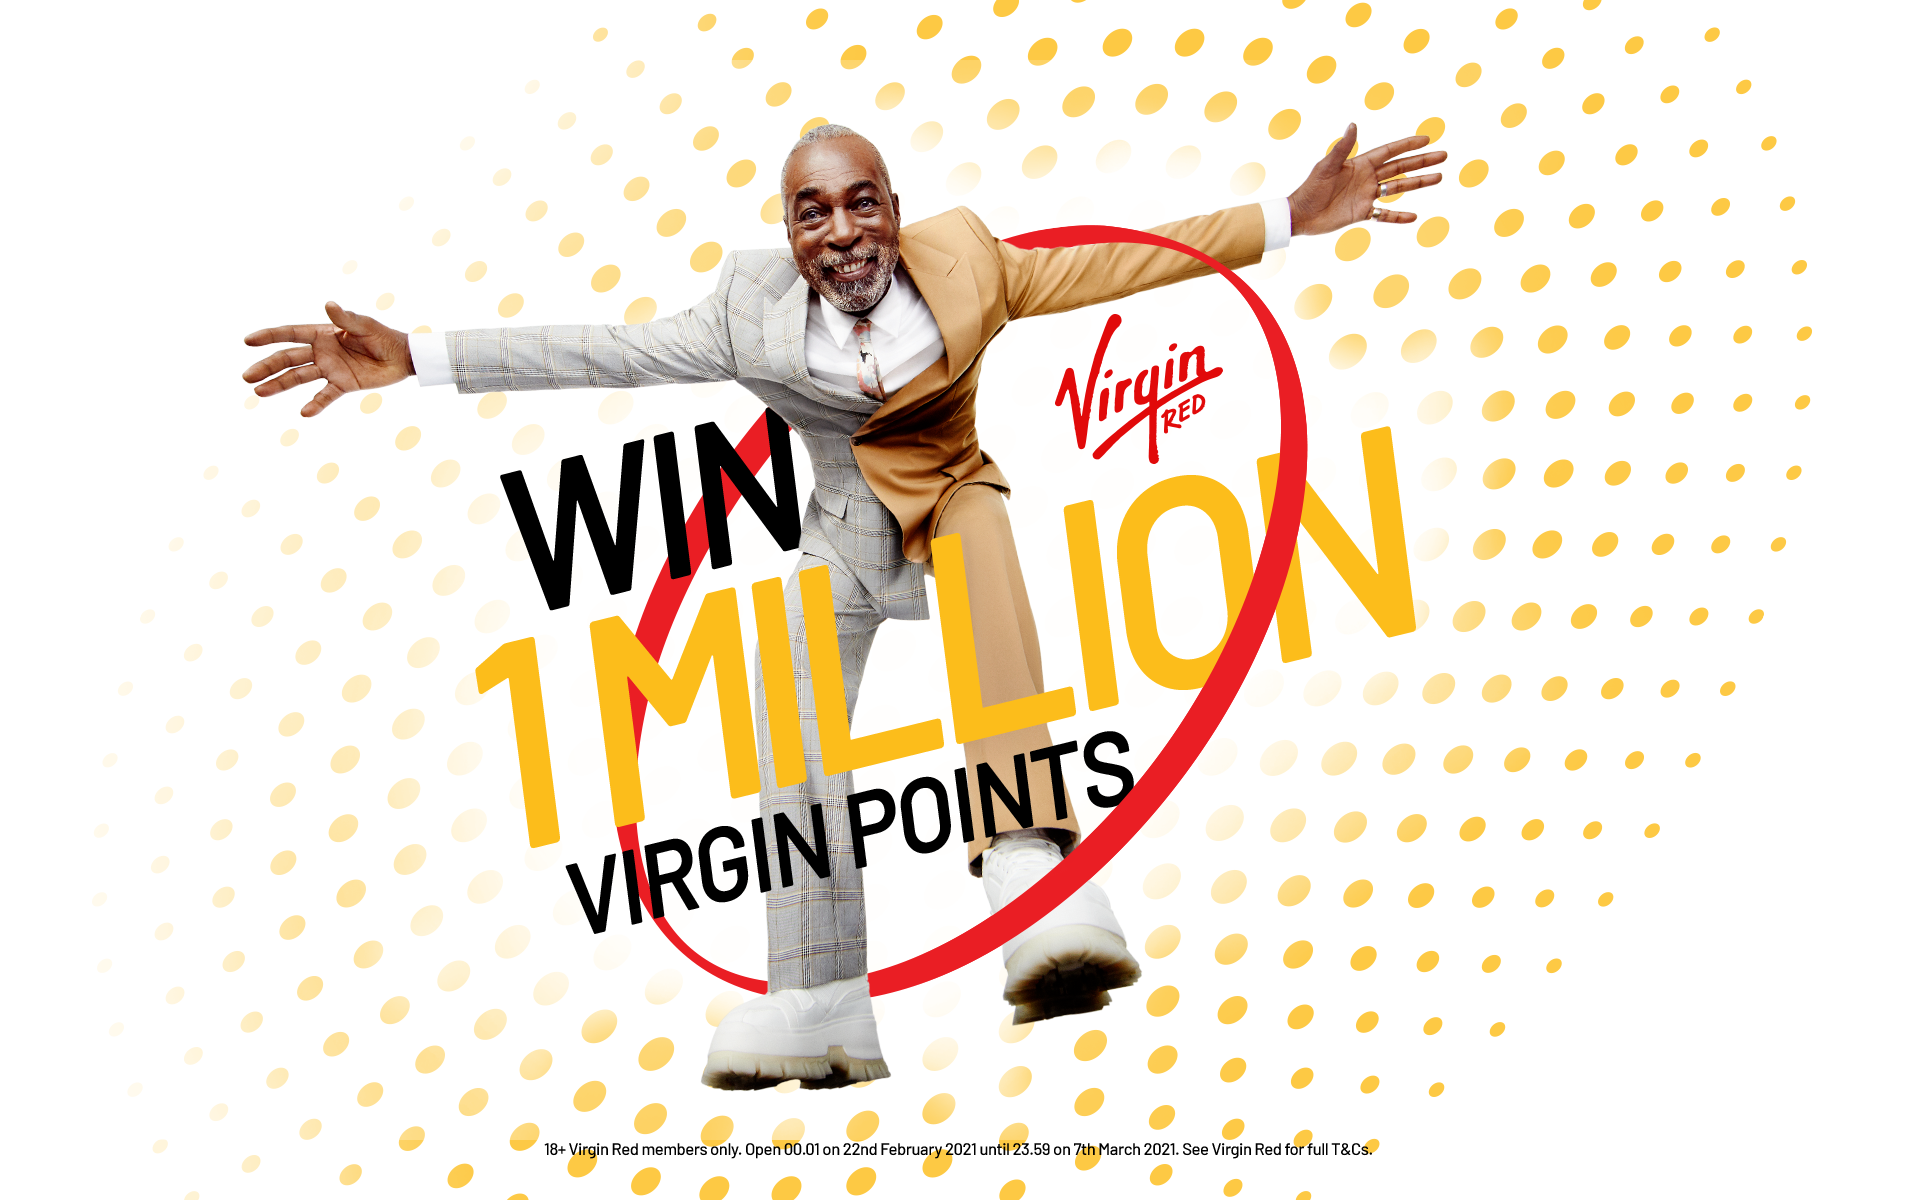 Win 1 Million Virgin Points